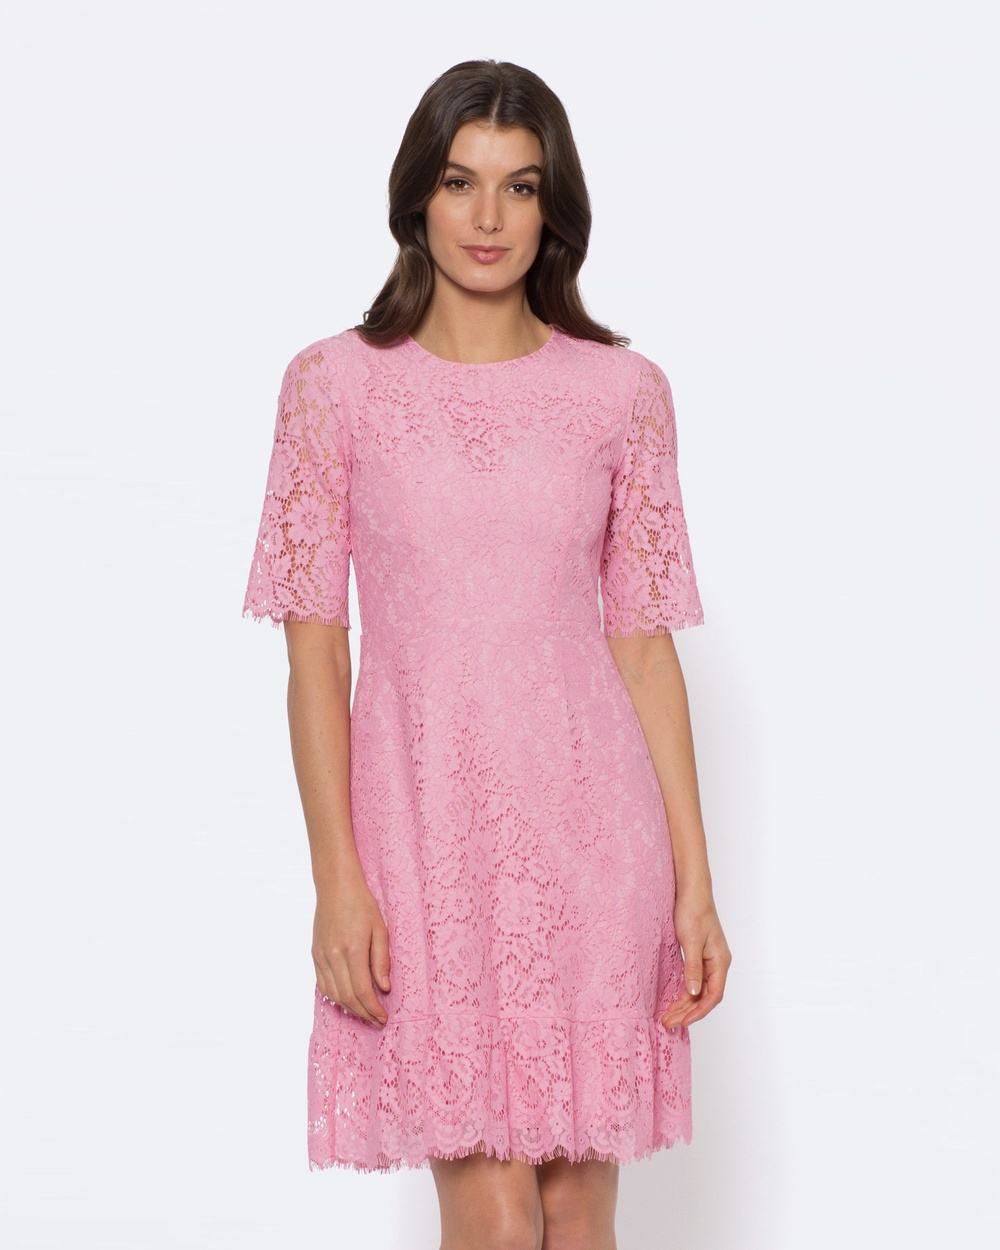 Alannah Hill Enamour Dress Dresses Pink Enamour Dress